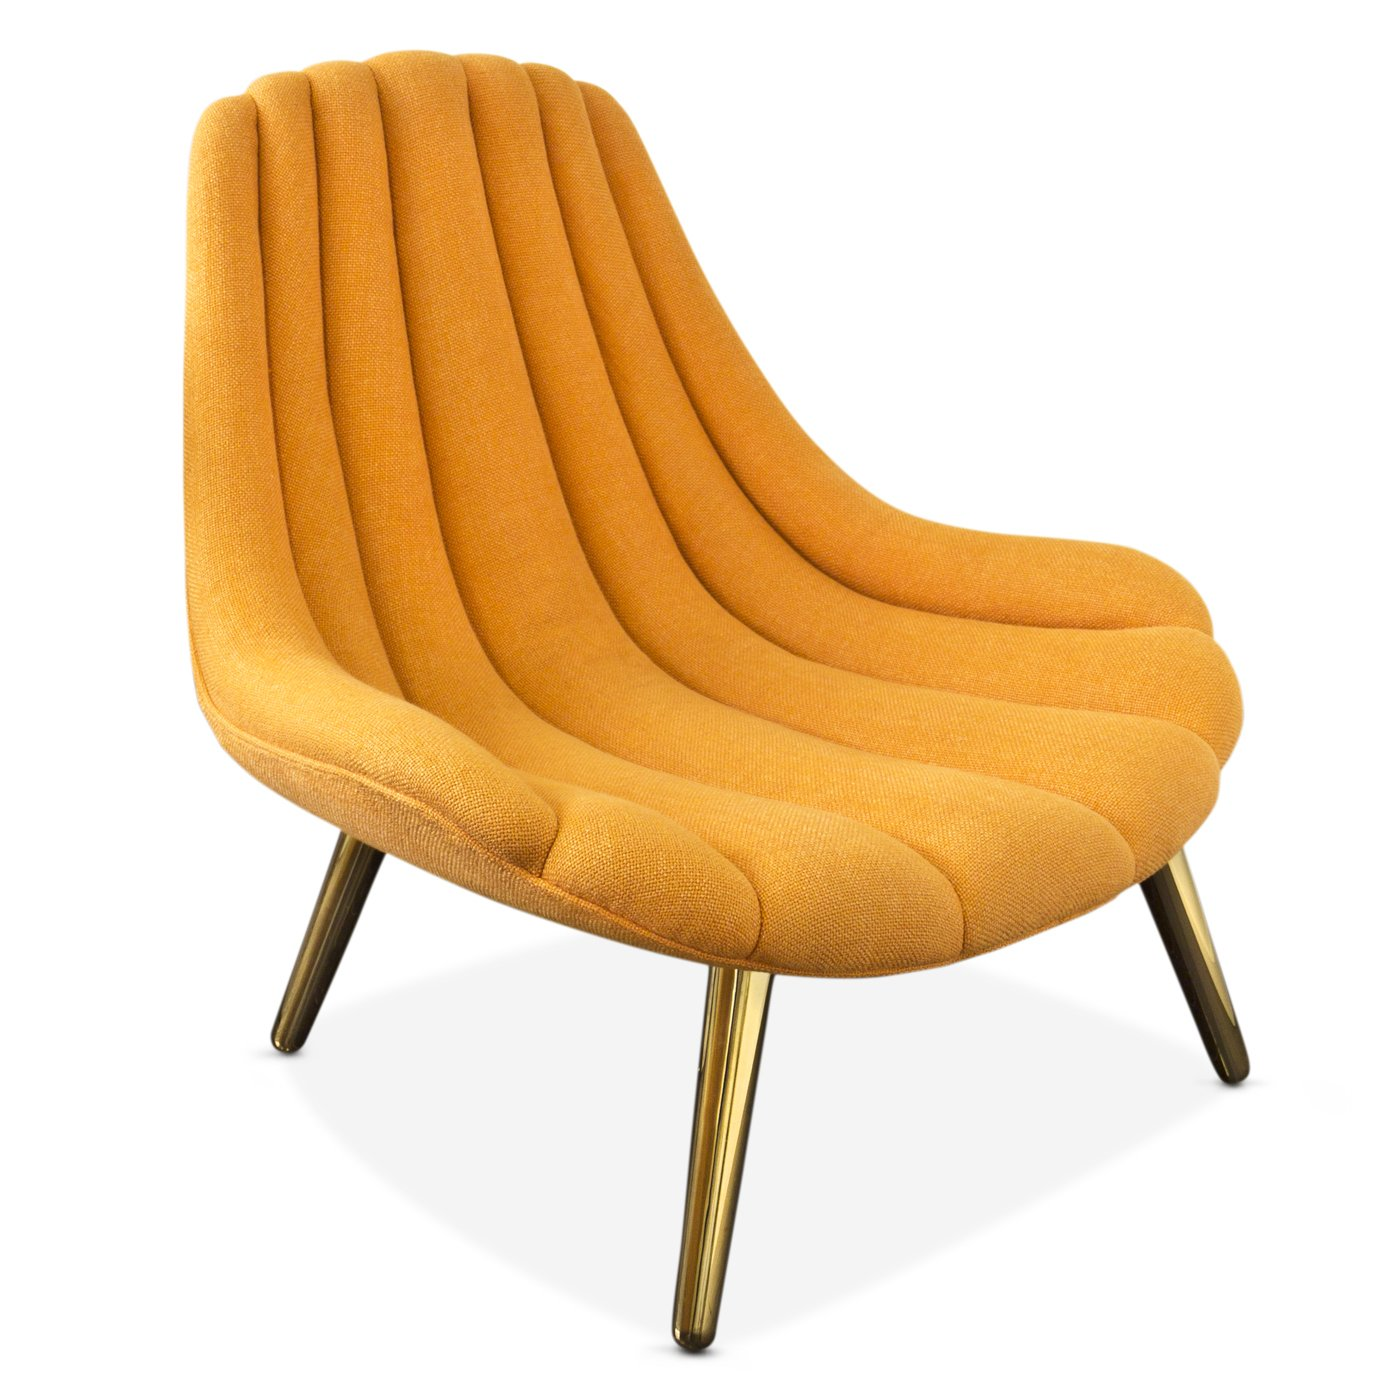 Adler's shell-esque Brigitte Chair with brushed brass legs.  Photo 1 of 9 in Creativity and Constraint: A City Modern Preview